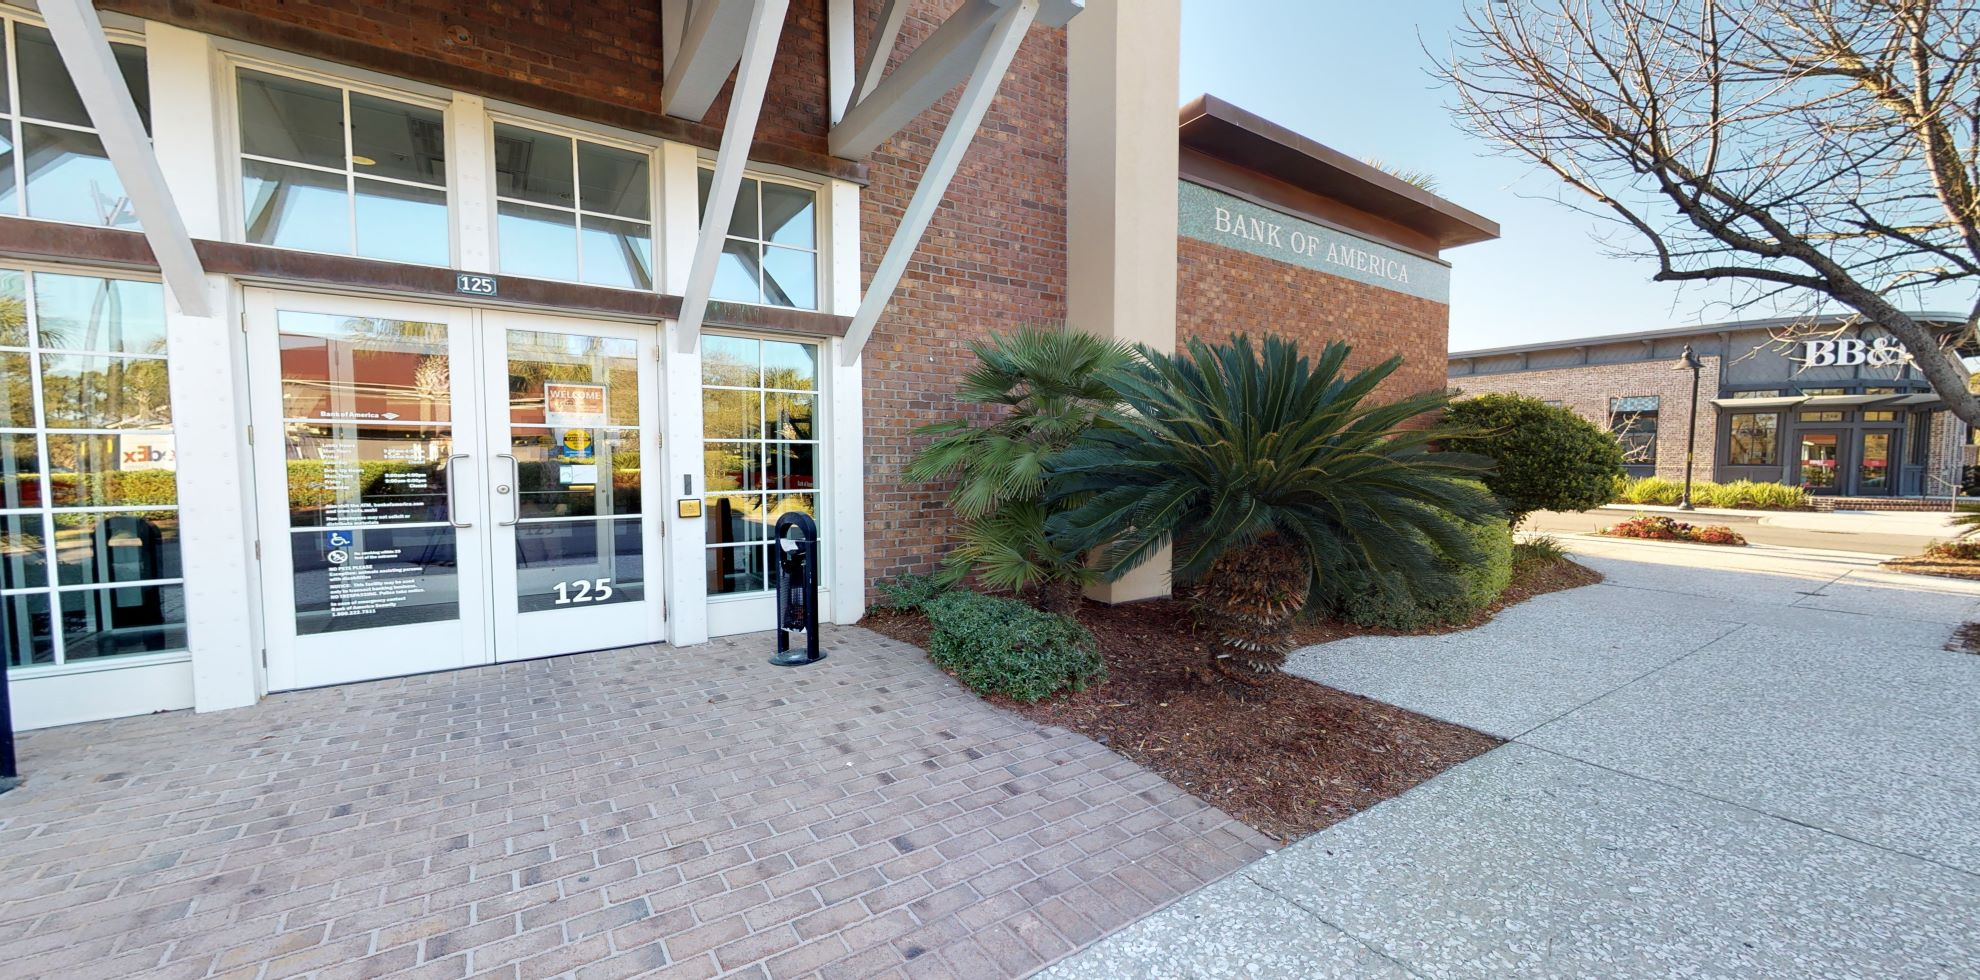 Bank of America financial center with drive-thru ATM and teller | 125 Hedge Row Ln, Johns Island, SC 29455